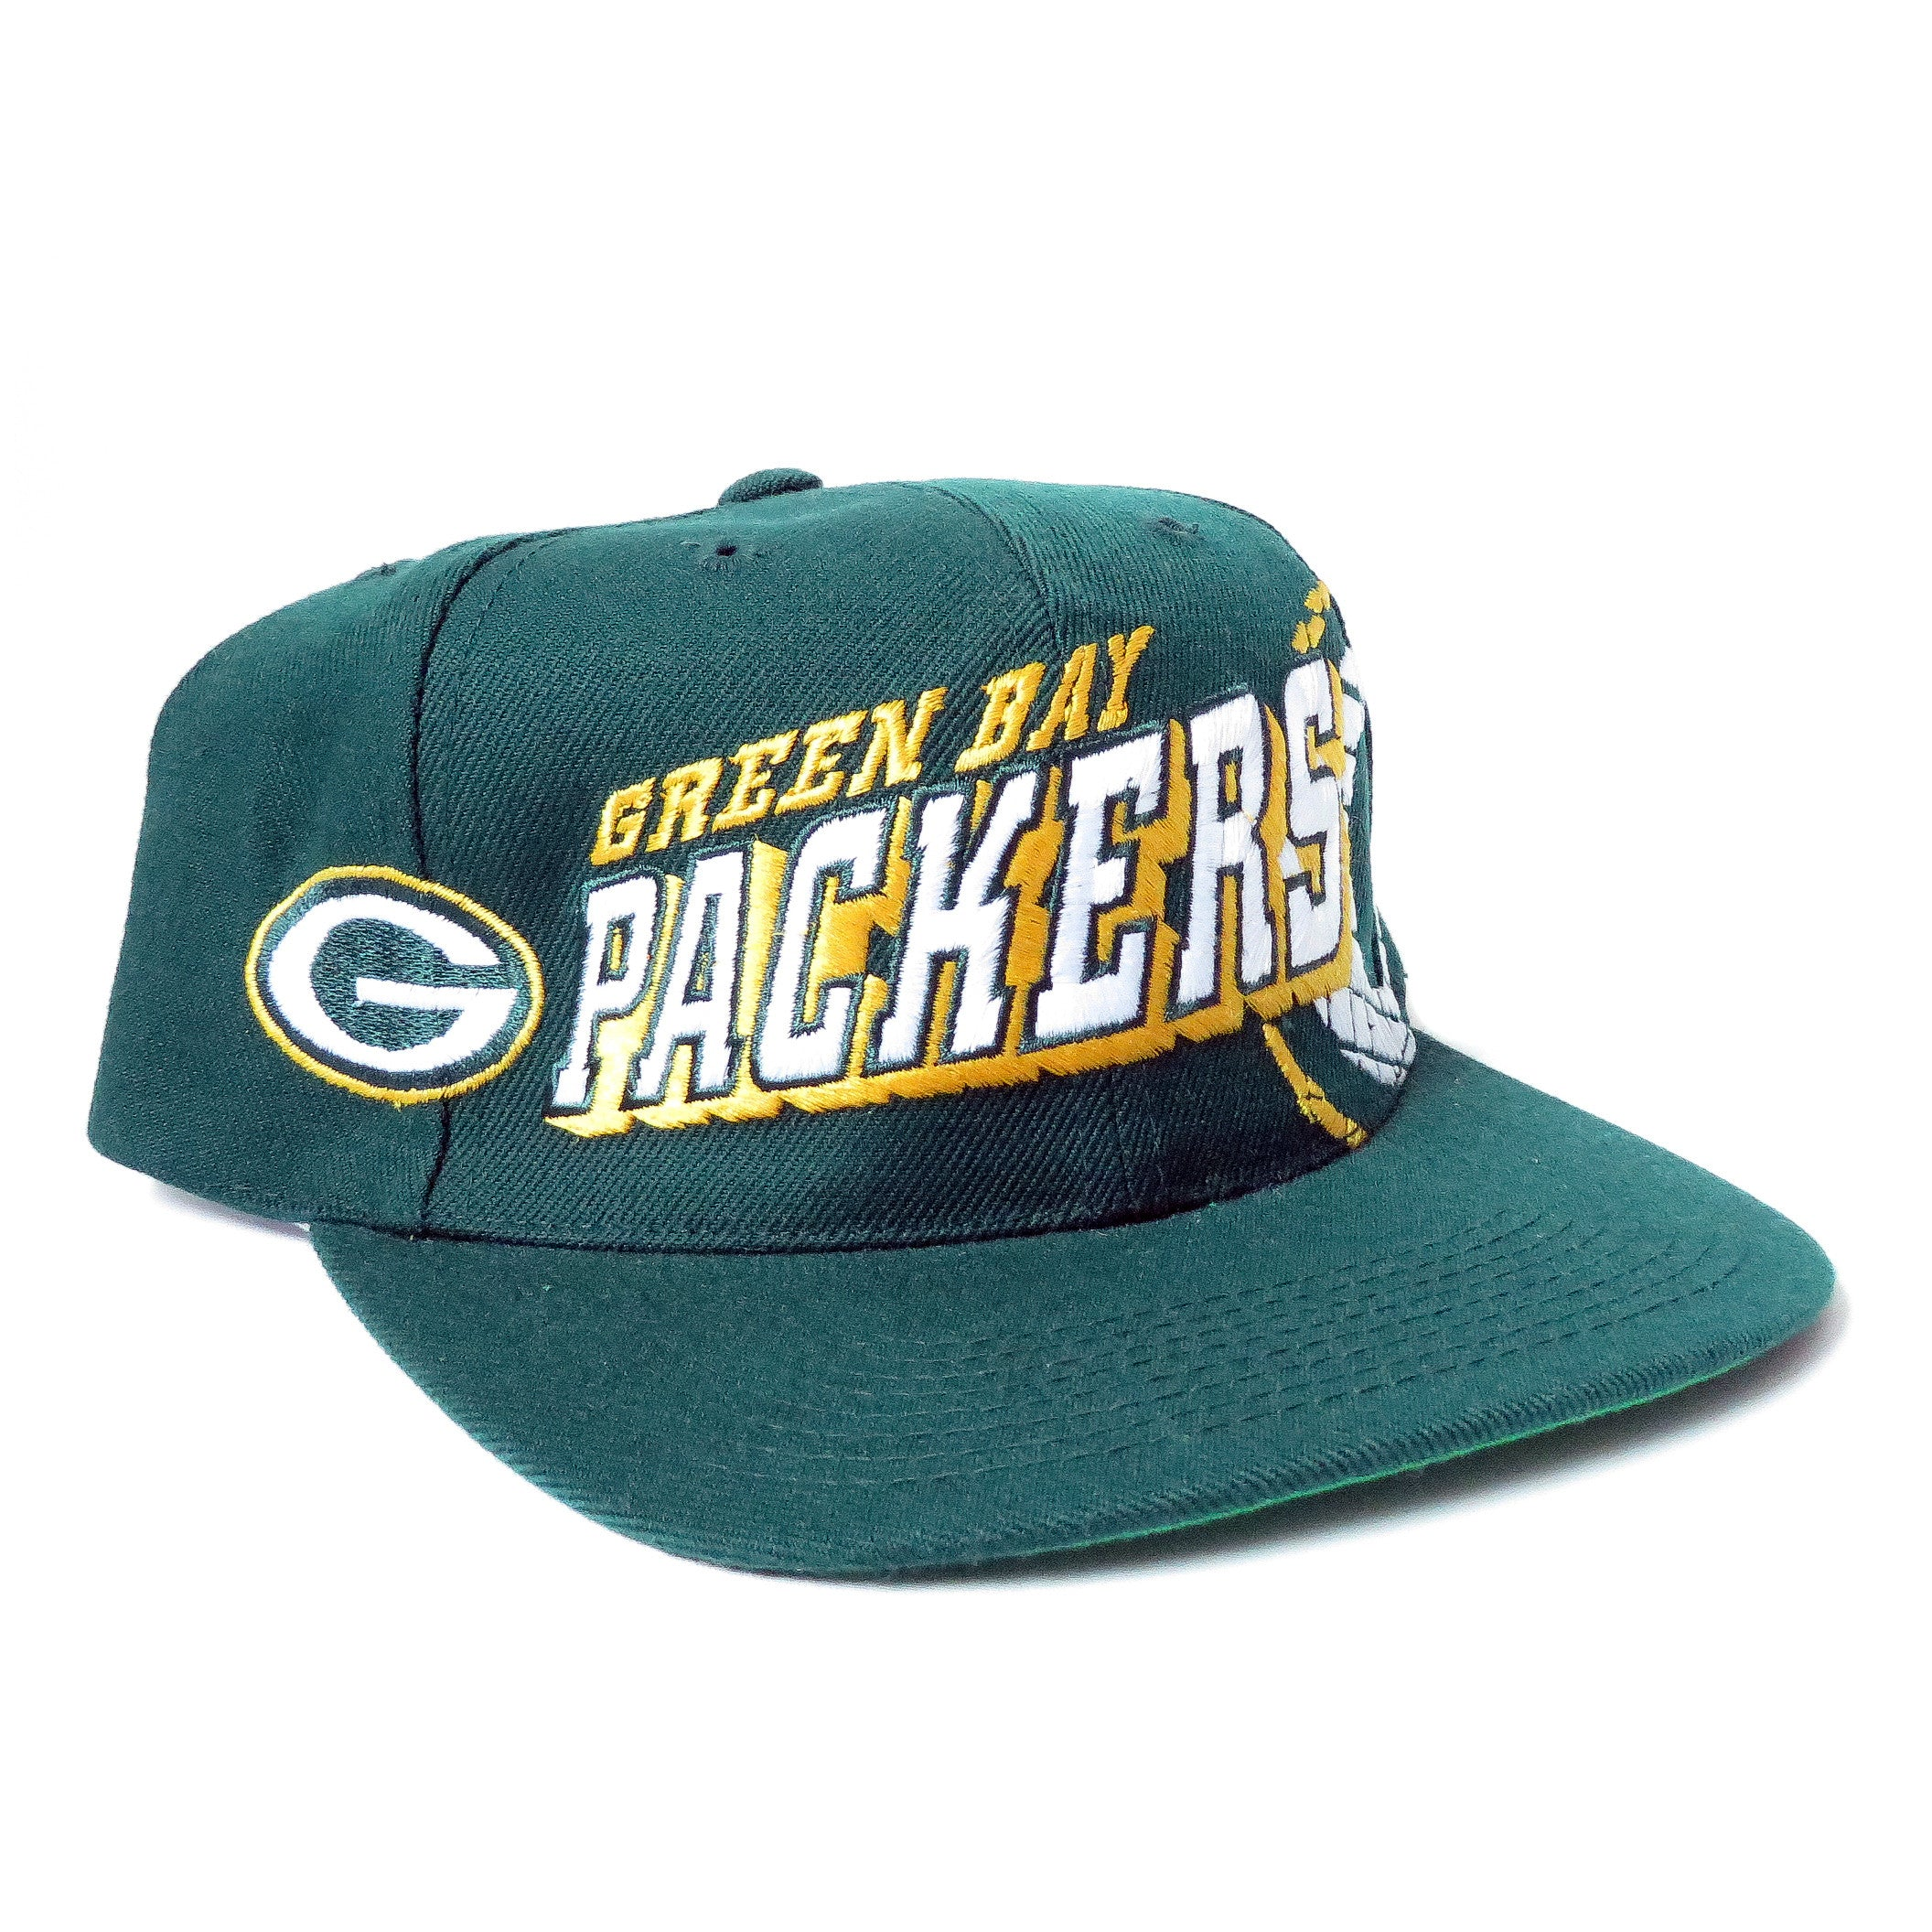 Vintage Green Bay Packers Sports Specialties Snapback Hat